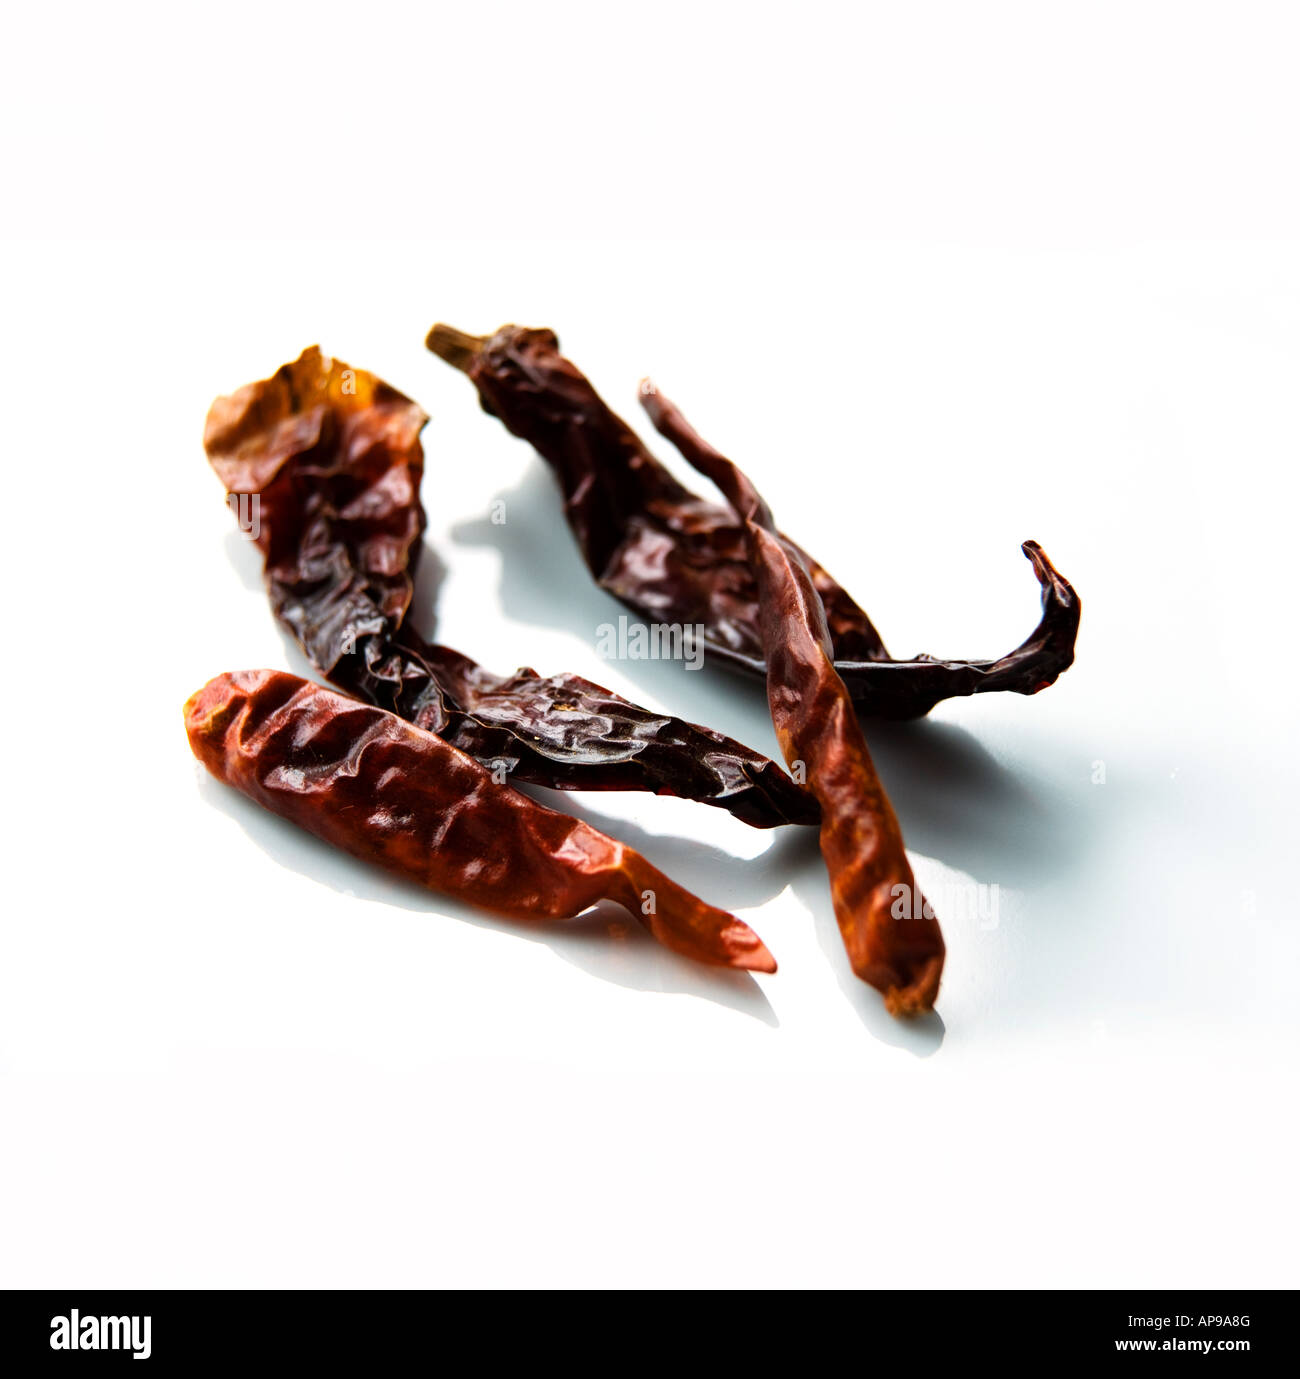 dried-kashmiri-red-chillies-on-white-bac